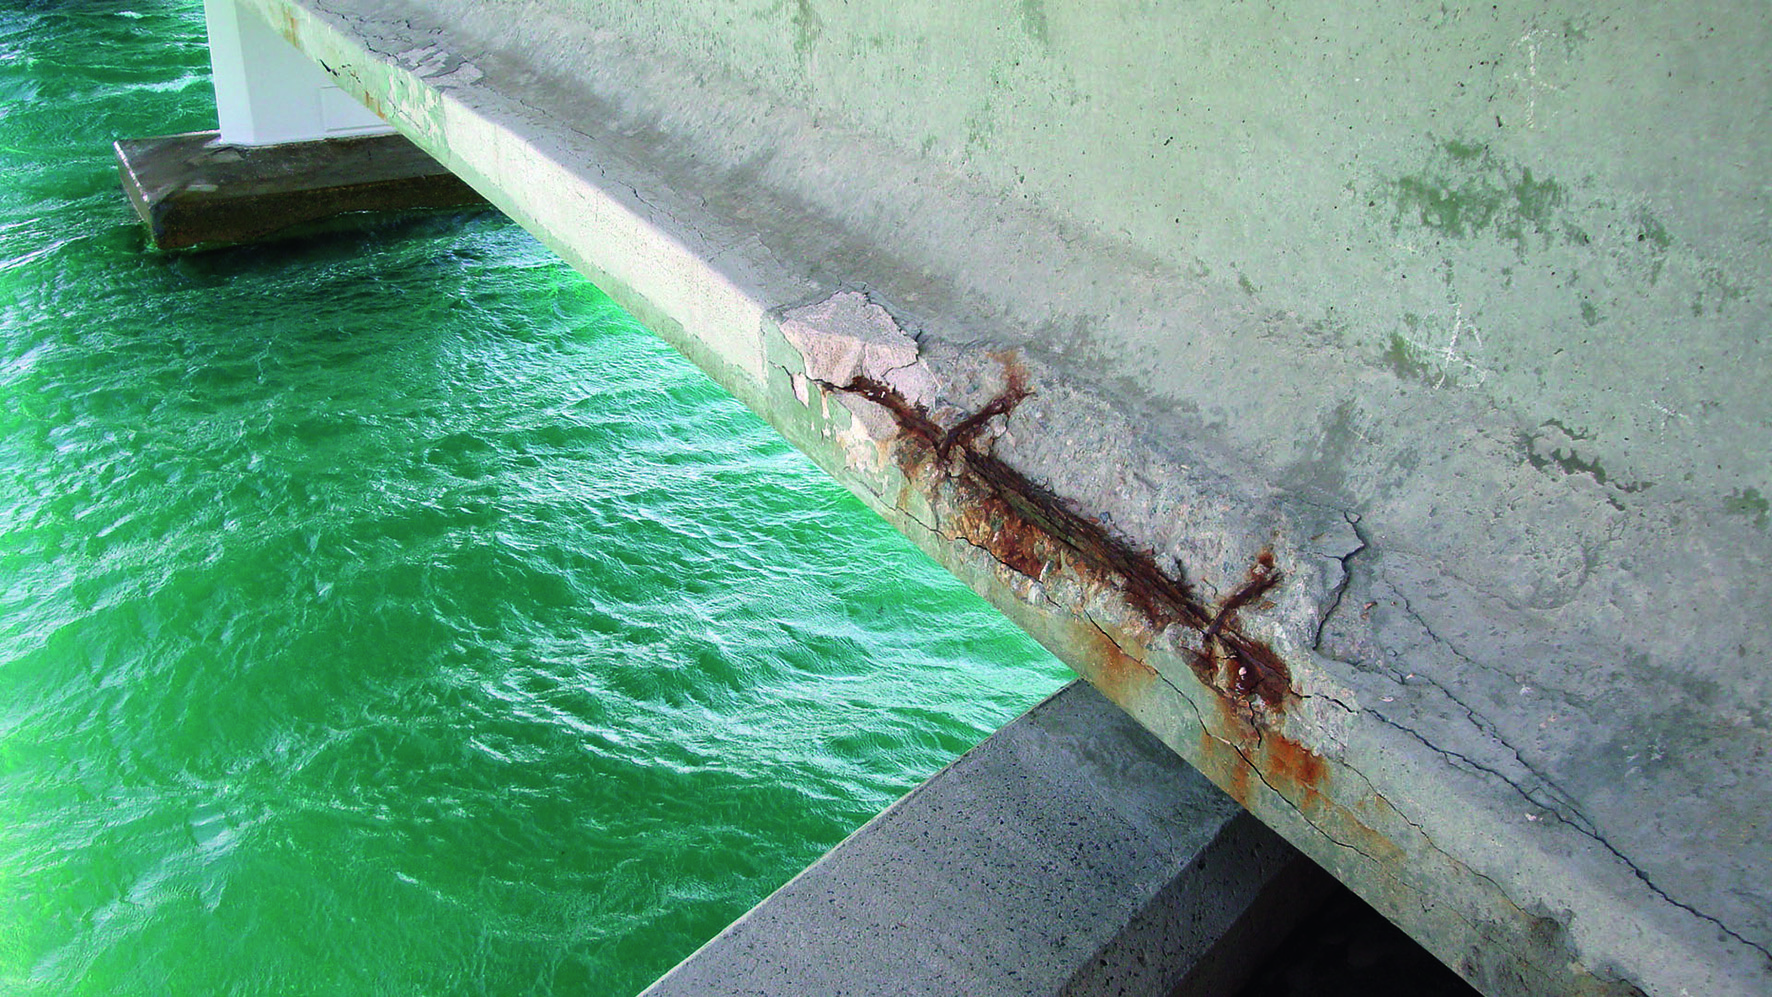 In addition loose damaged pieces of spalled concrete falling from buildings and structures is a real safety risk